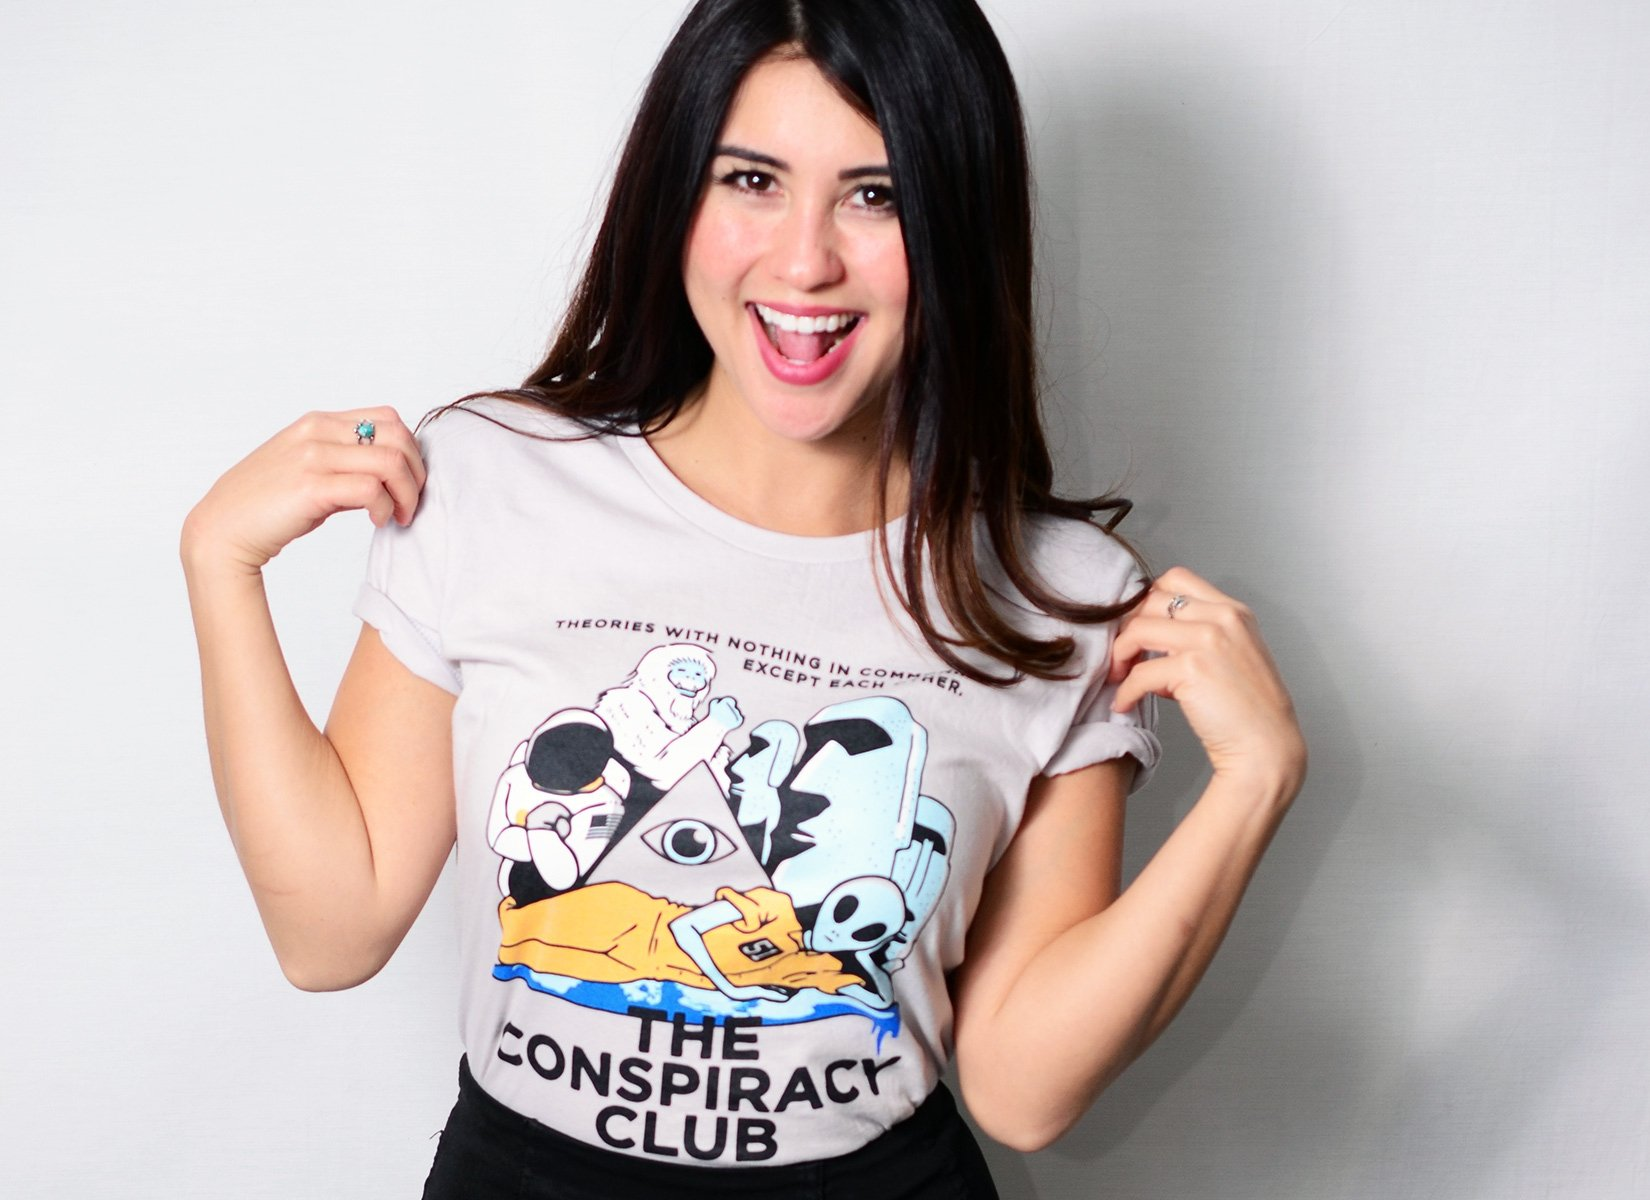 The Conspiracy Club on Womens T-Shirt